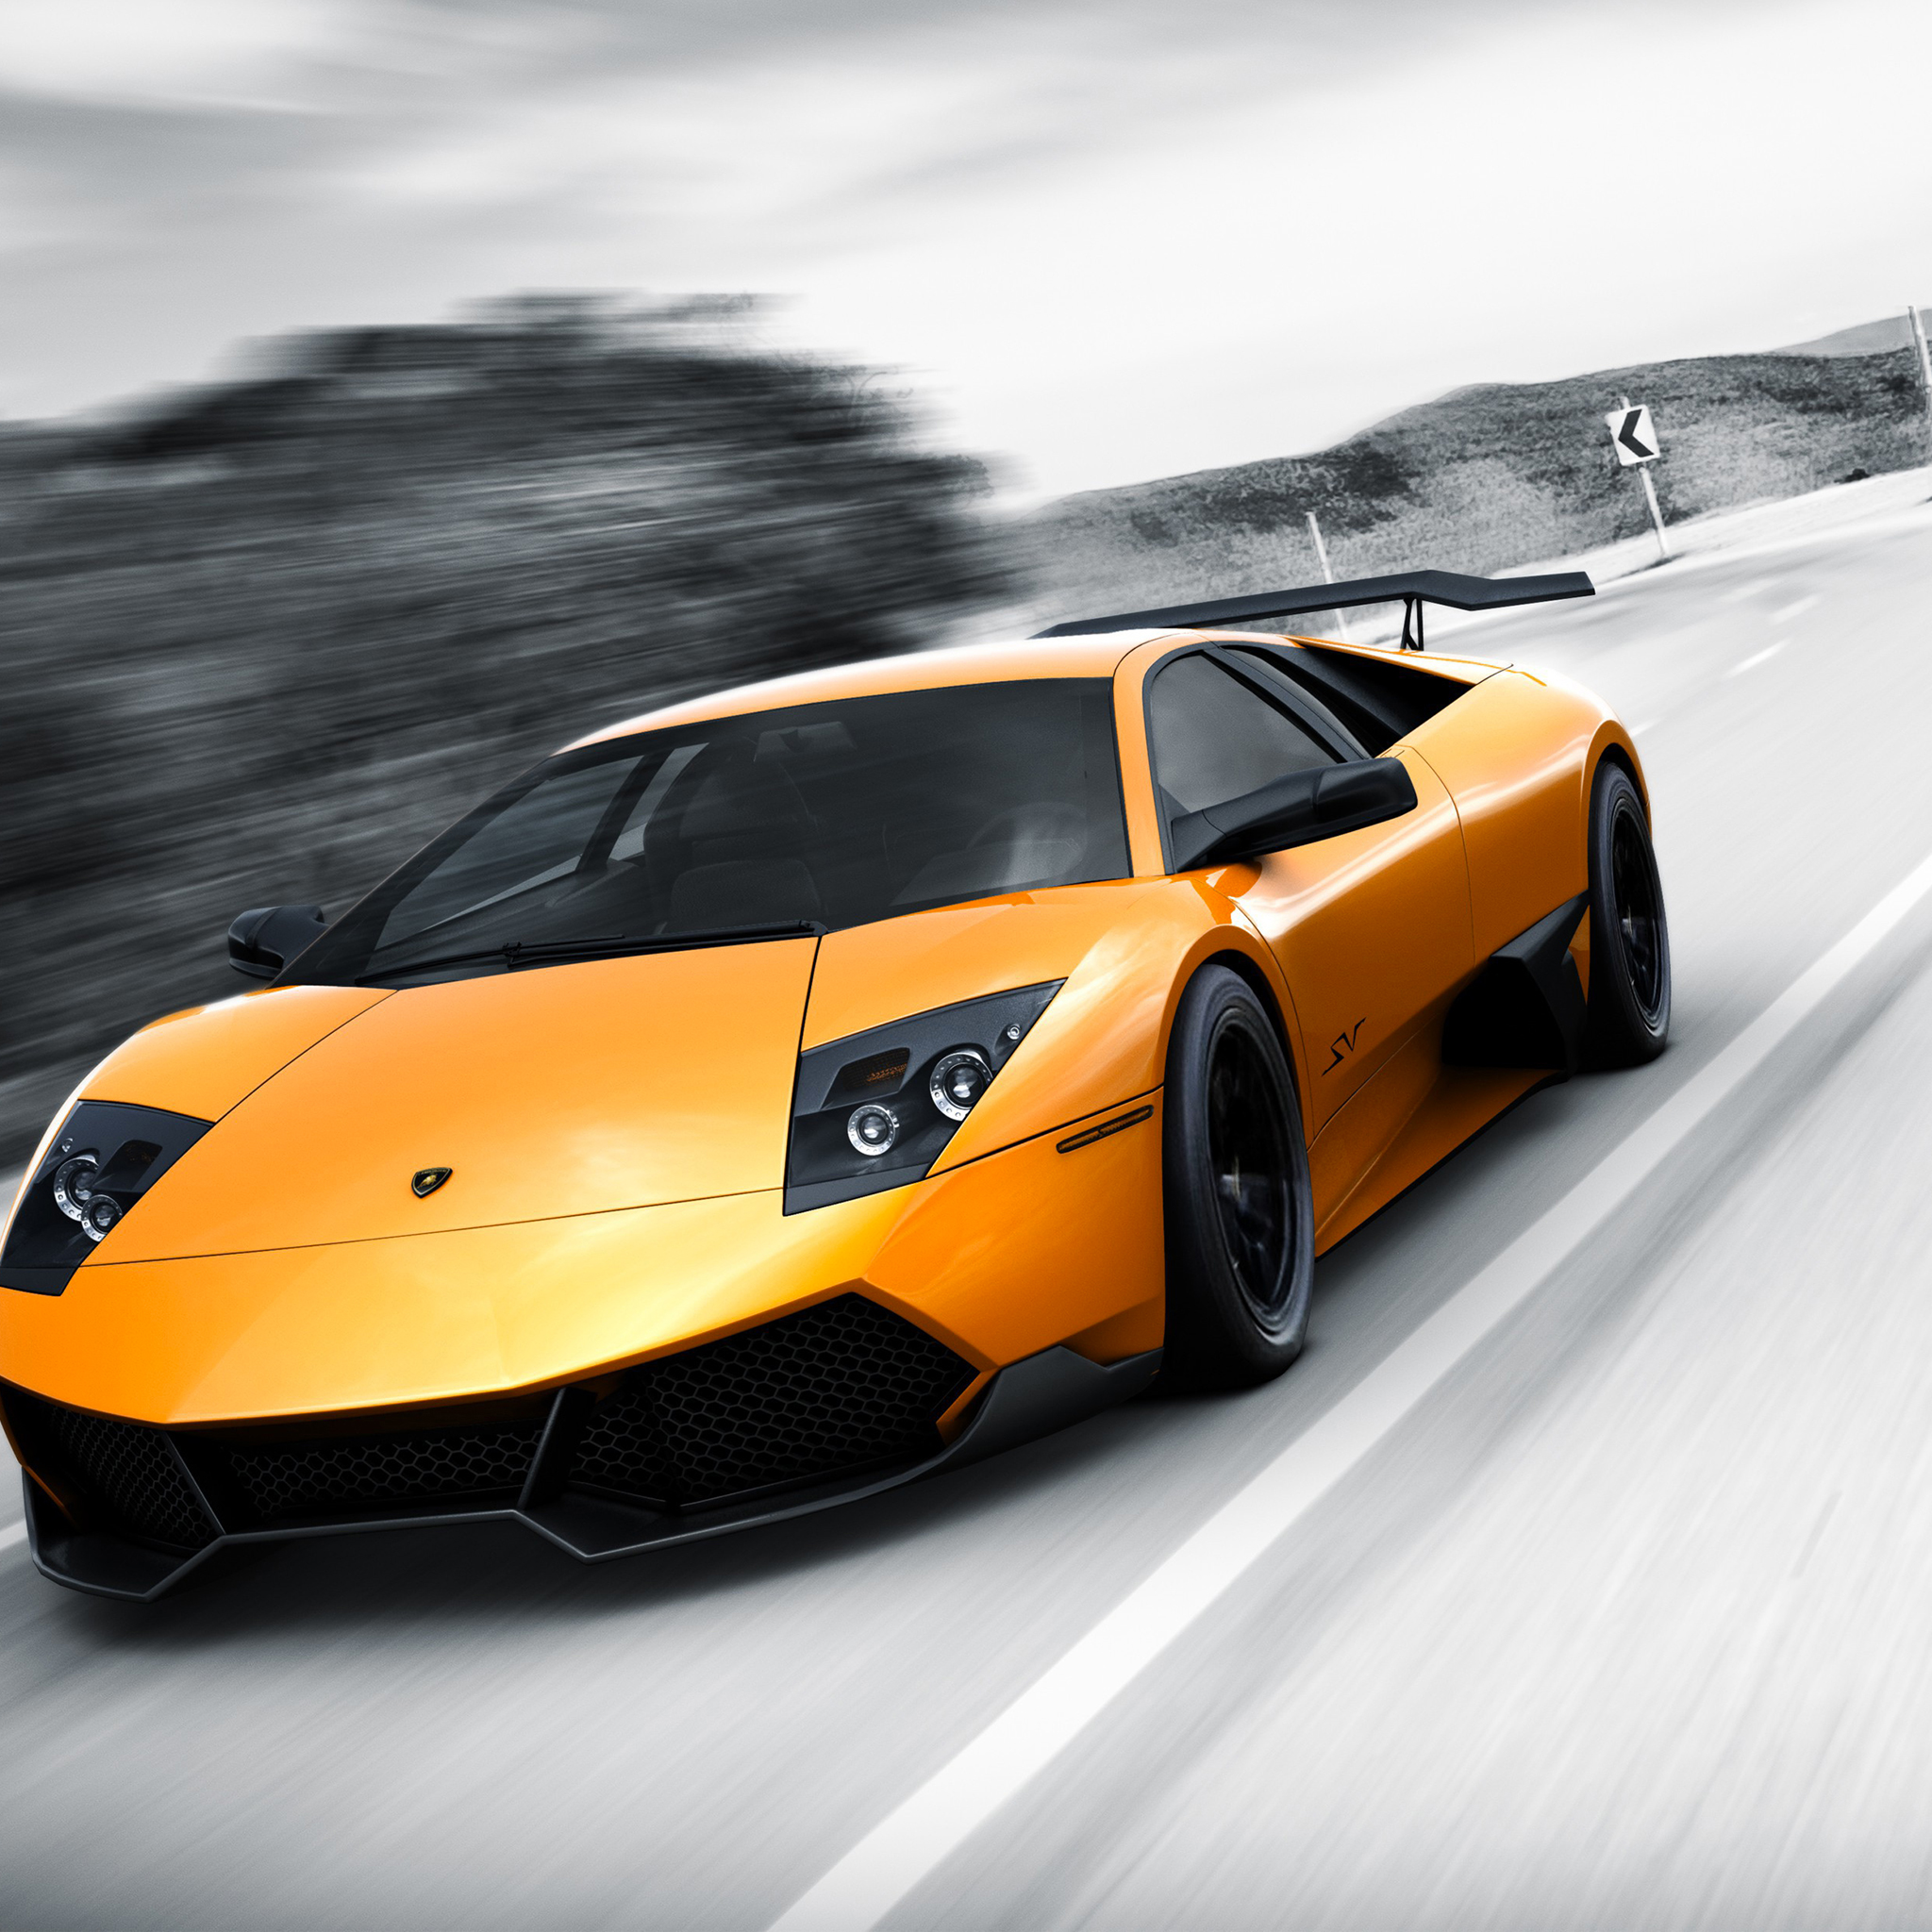 Lamborghini Wallpaper Ipad: IPad Retina Wallpaper For IPhone